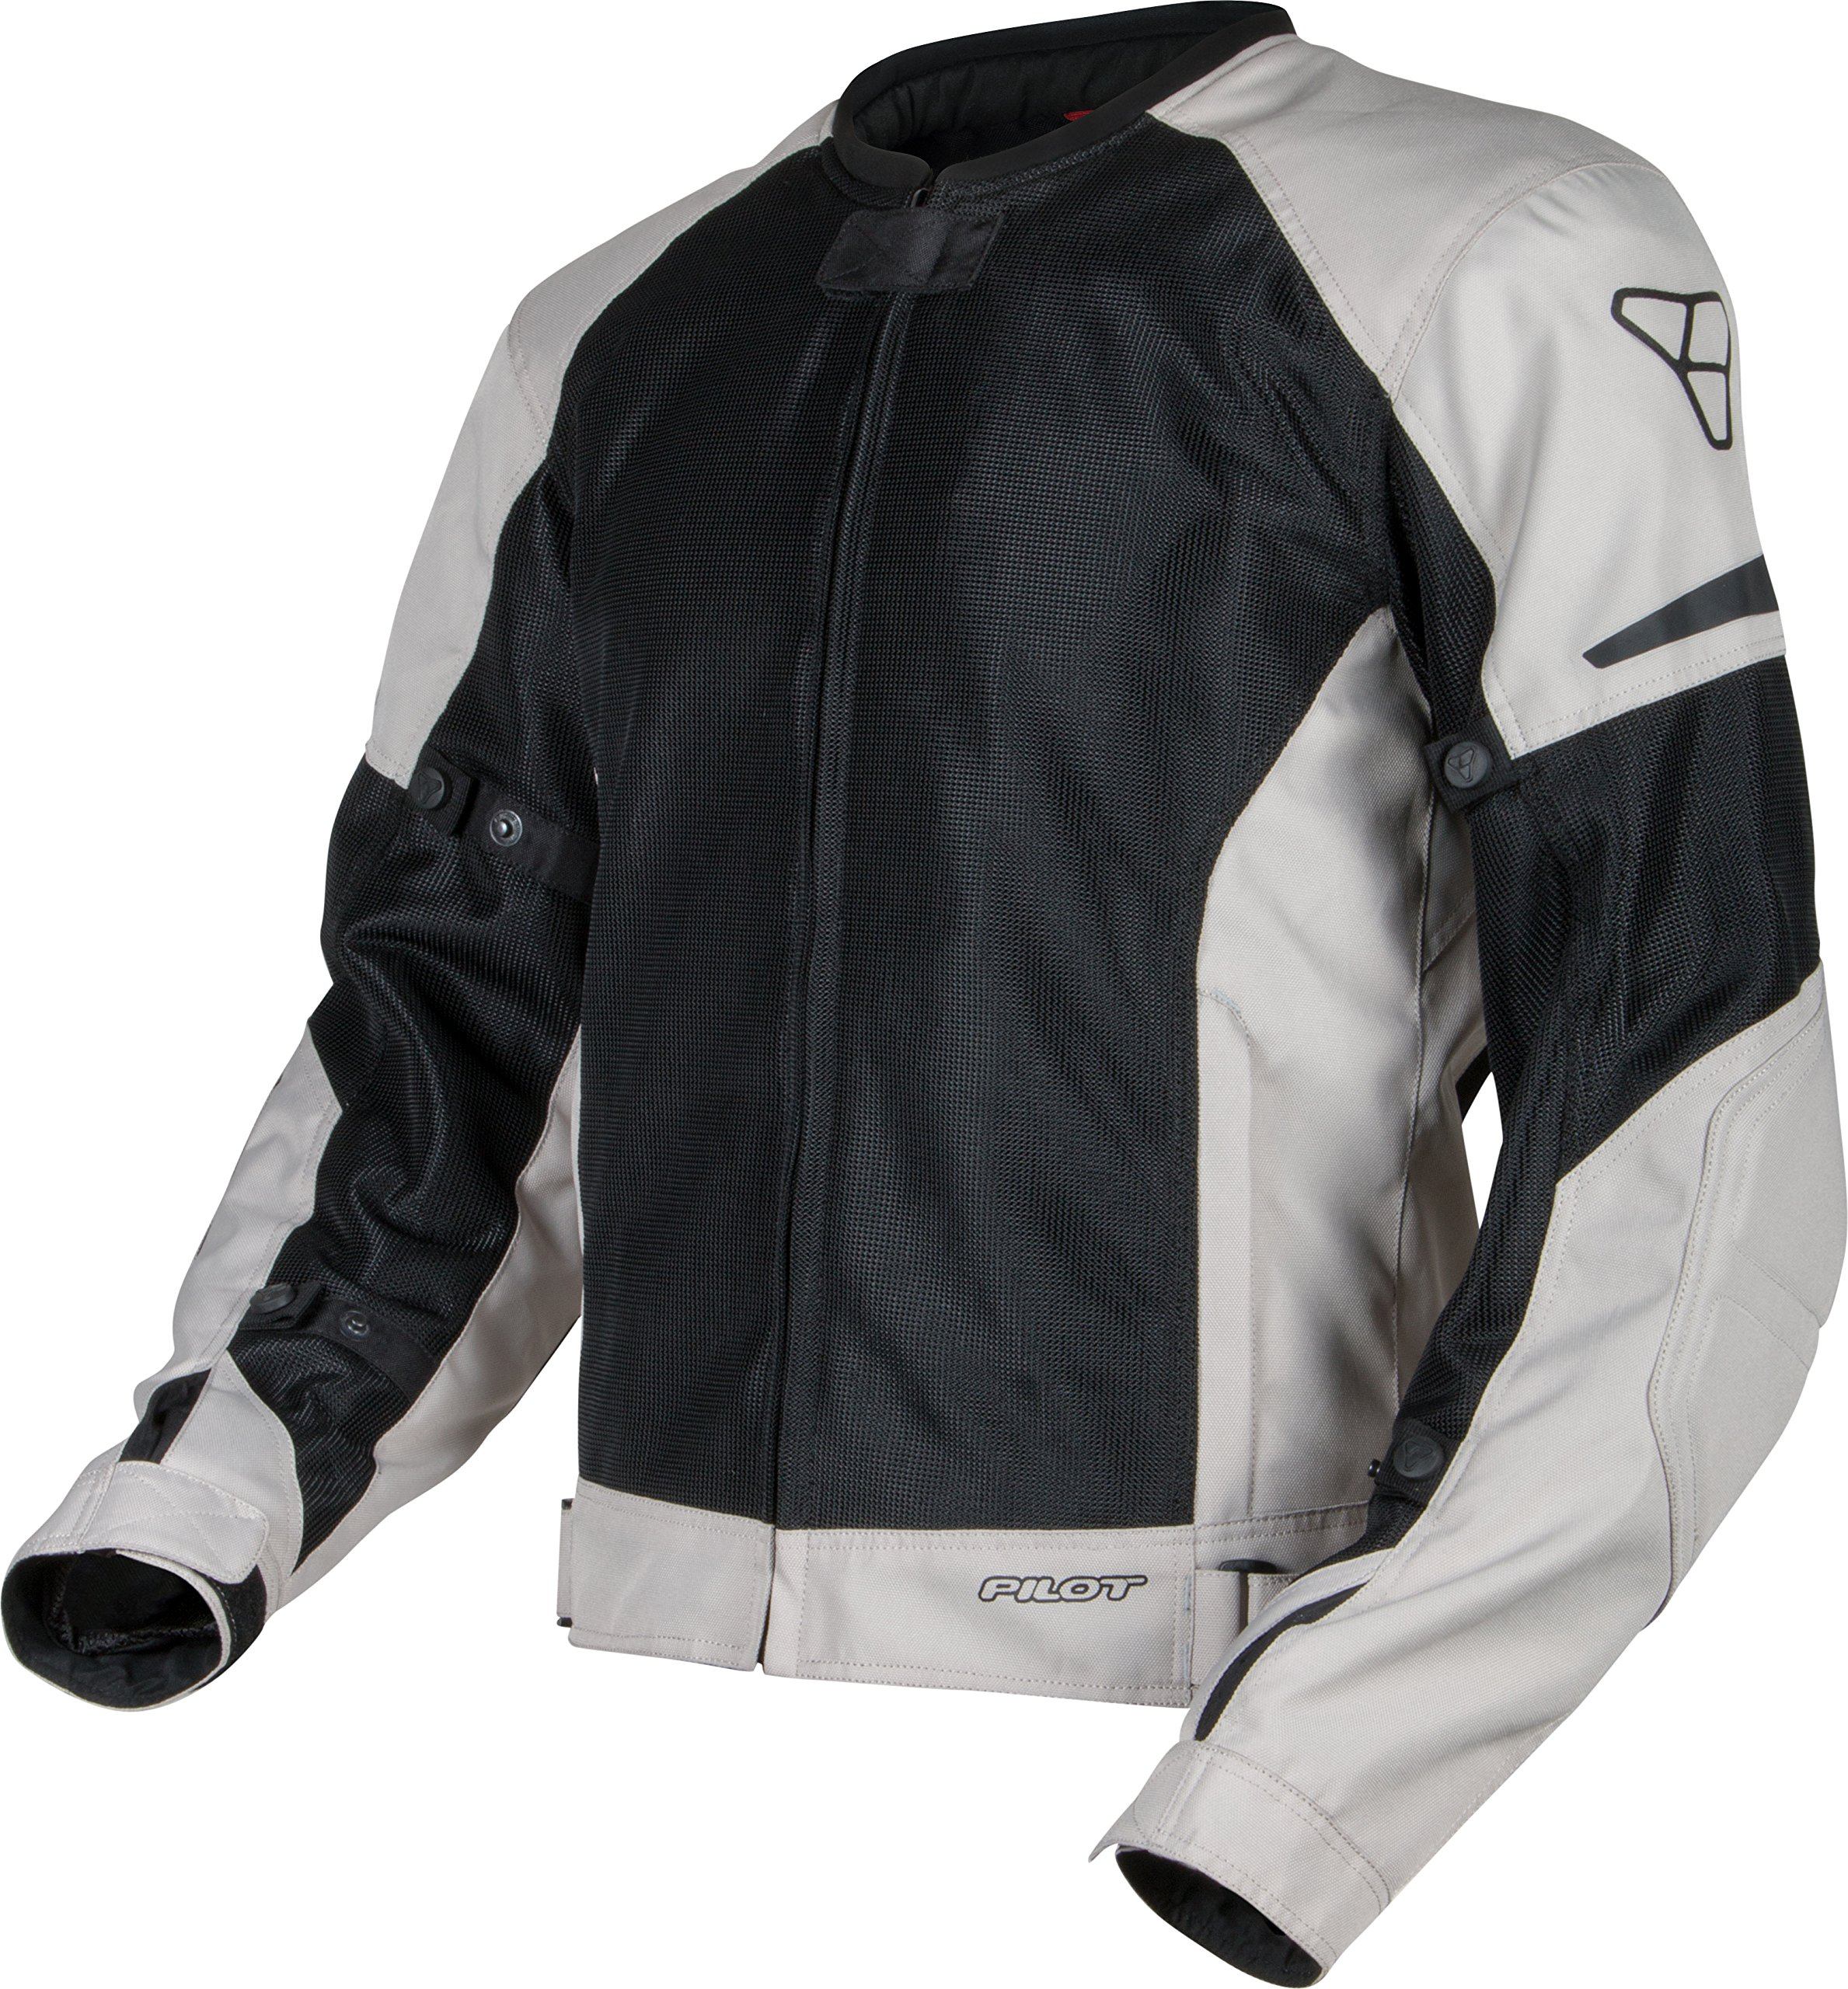 Pilot Motosport Men's Slate Air Mesh Motorcycle Jacket, SILVER, S (Small)